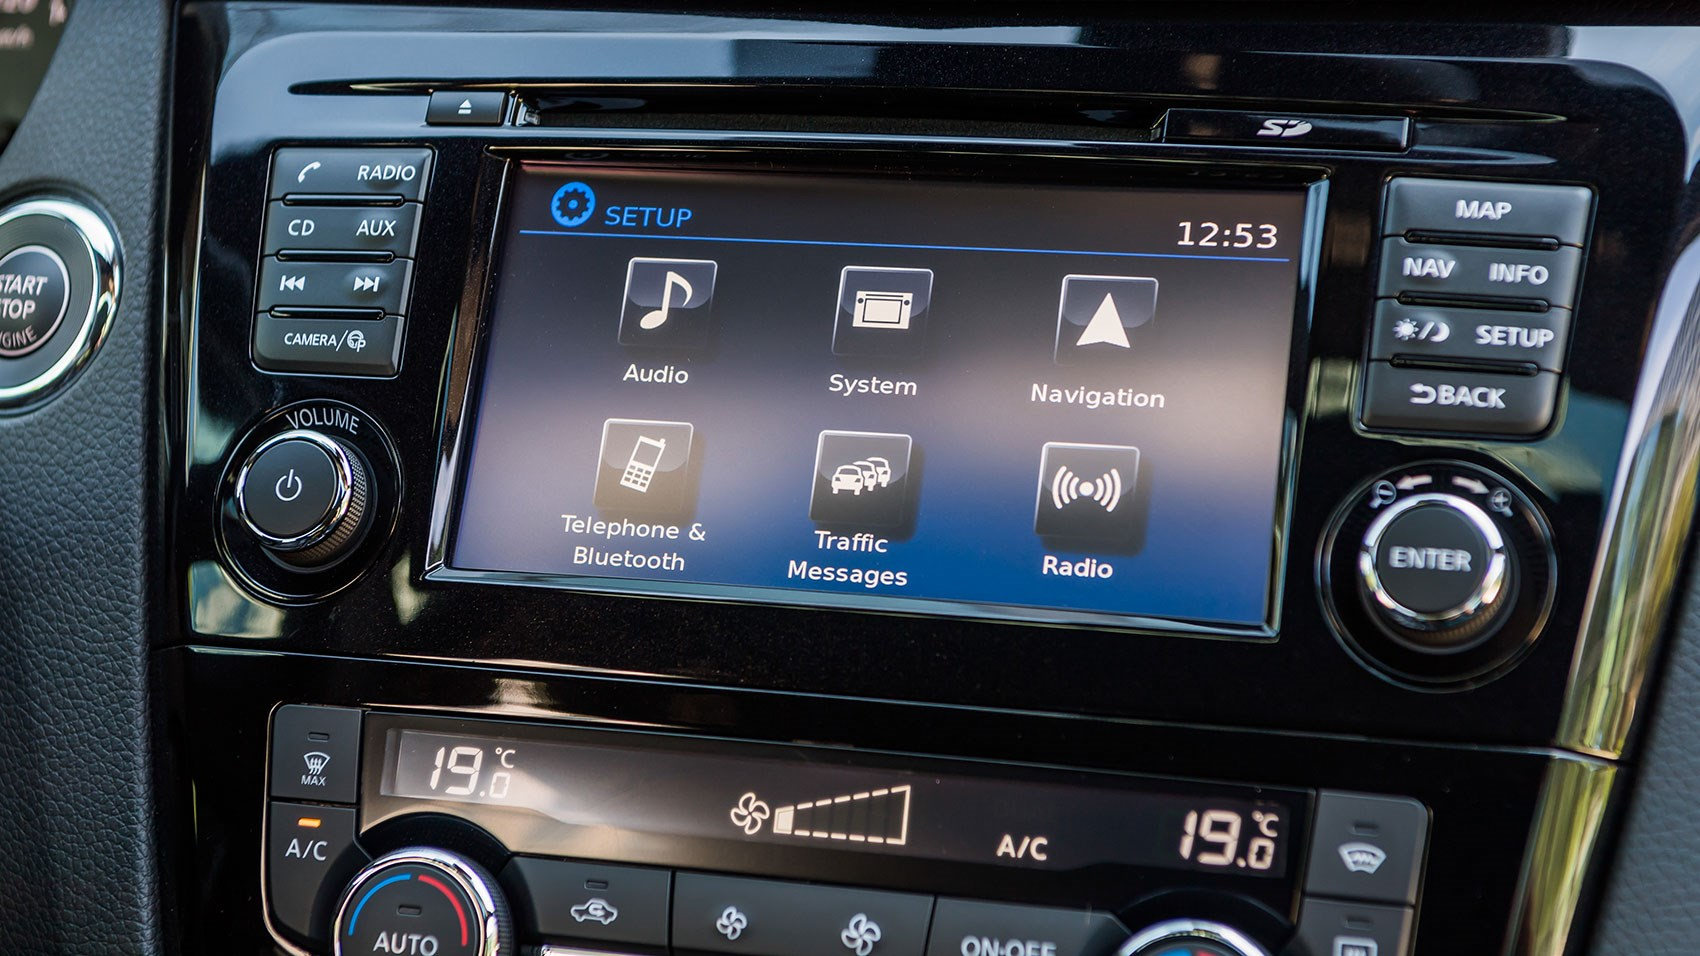 App-style interface for new NissanConnect touchscreen infotainment system